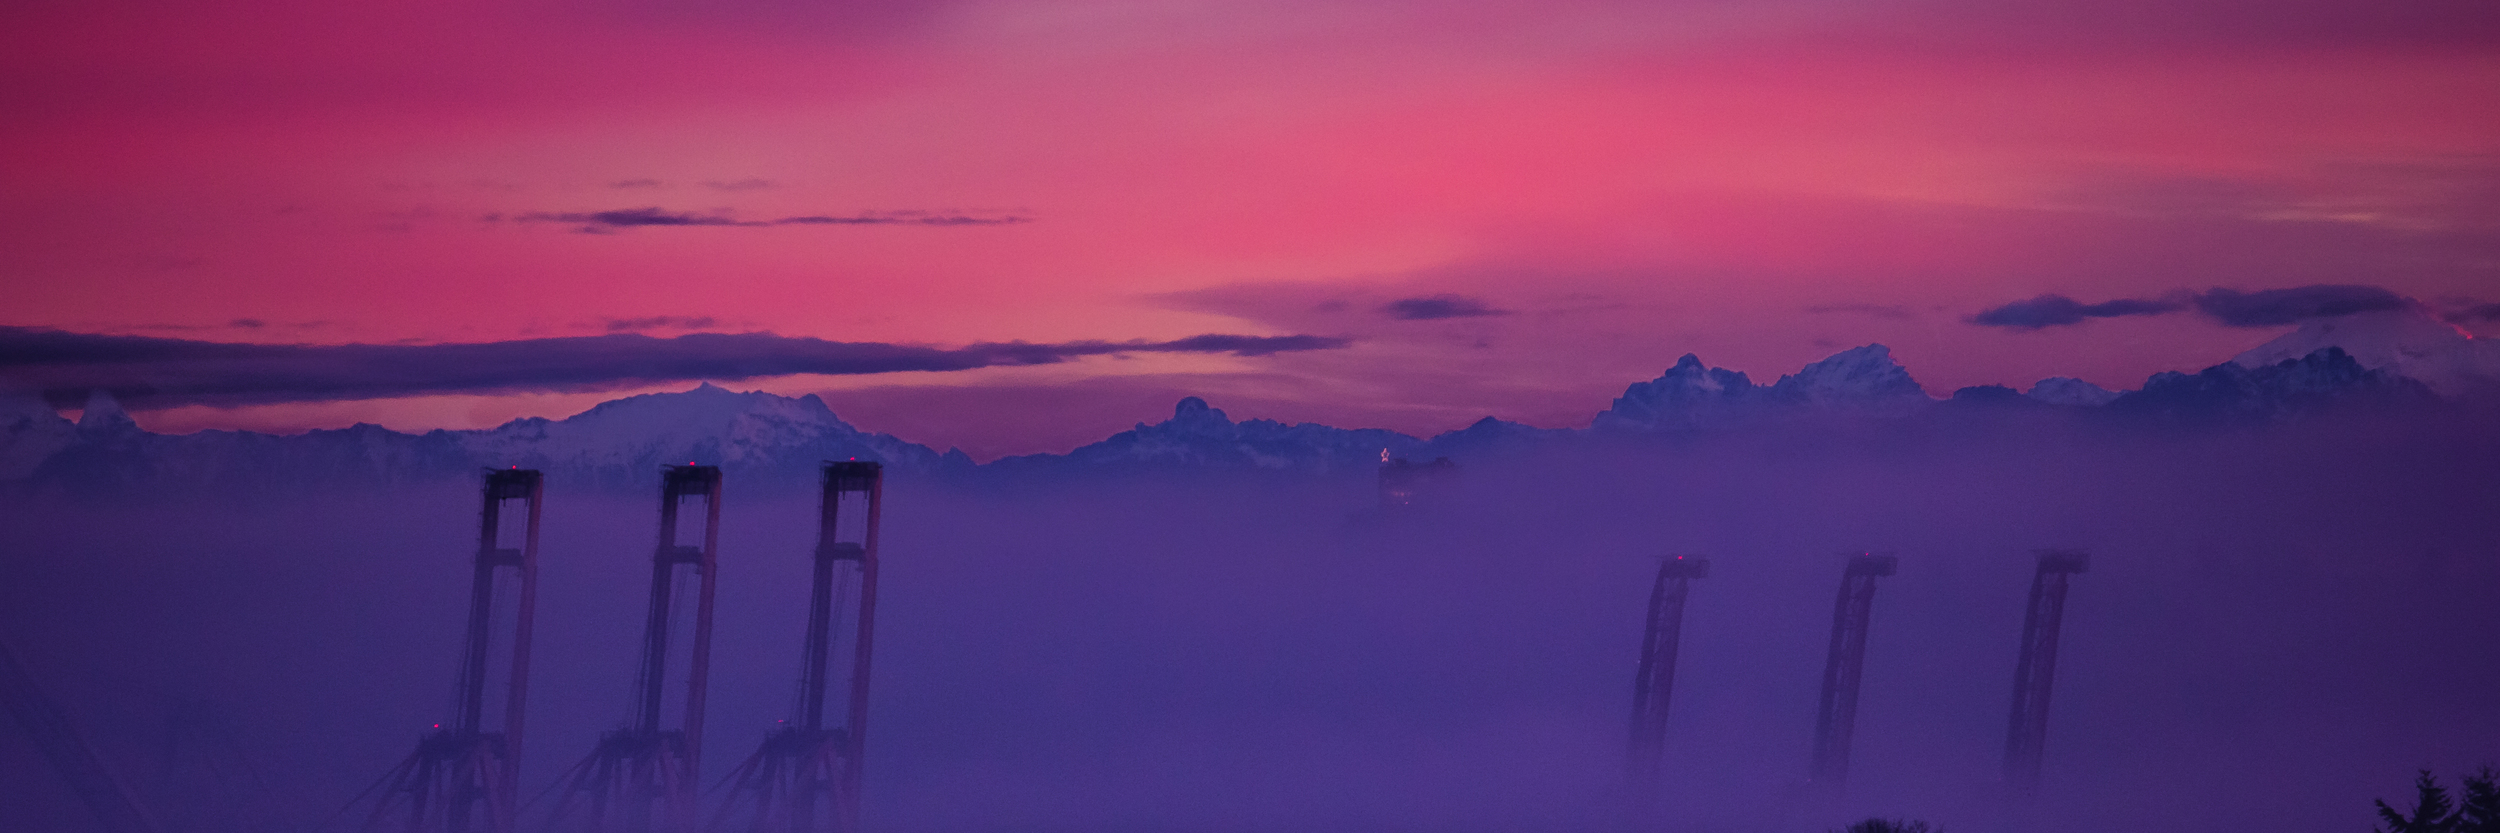 Seattle Cranes and the Cascade Mountains at Sunrise